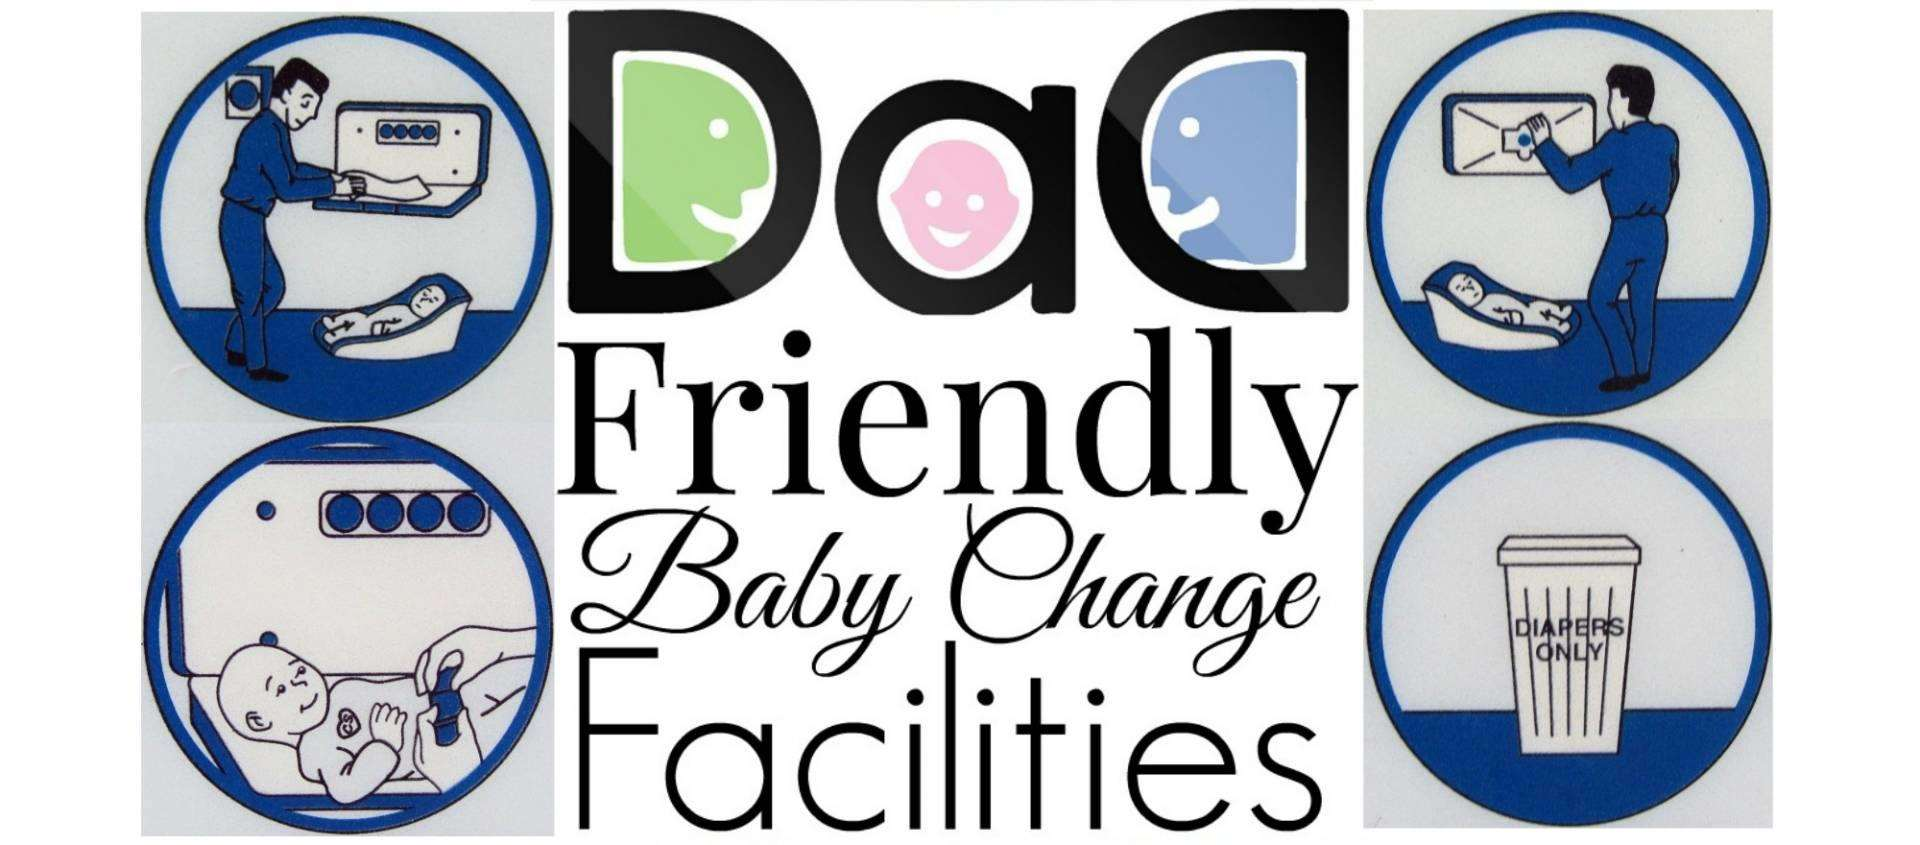 #dadsforchange Dad's can't change their baby's nappy in major UK restaurant chains, Dad Friendly baby change facilities FT%, new-dad%